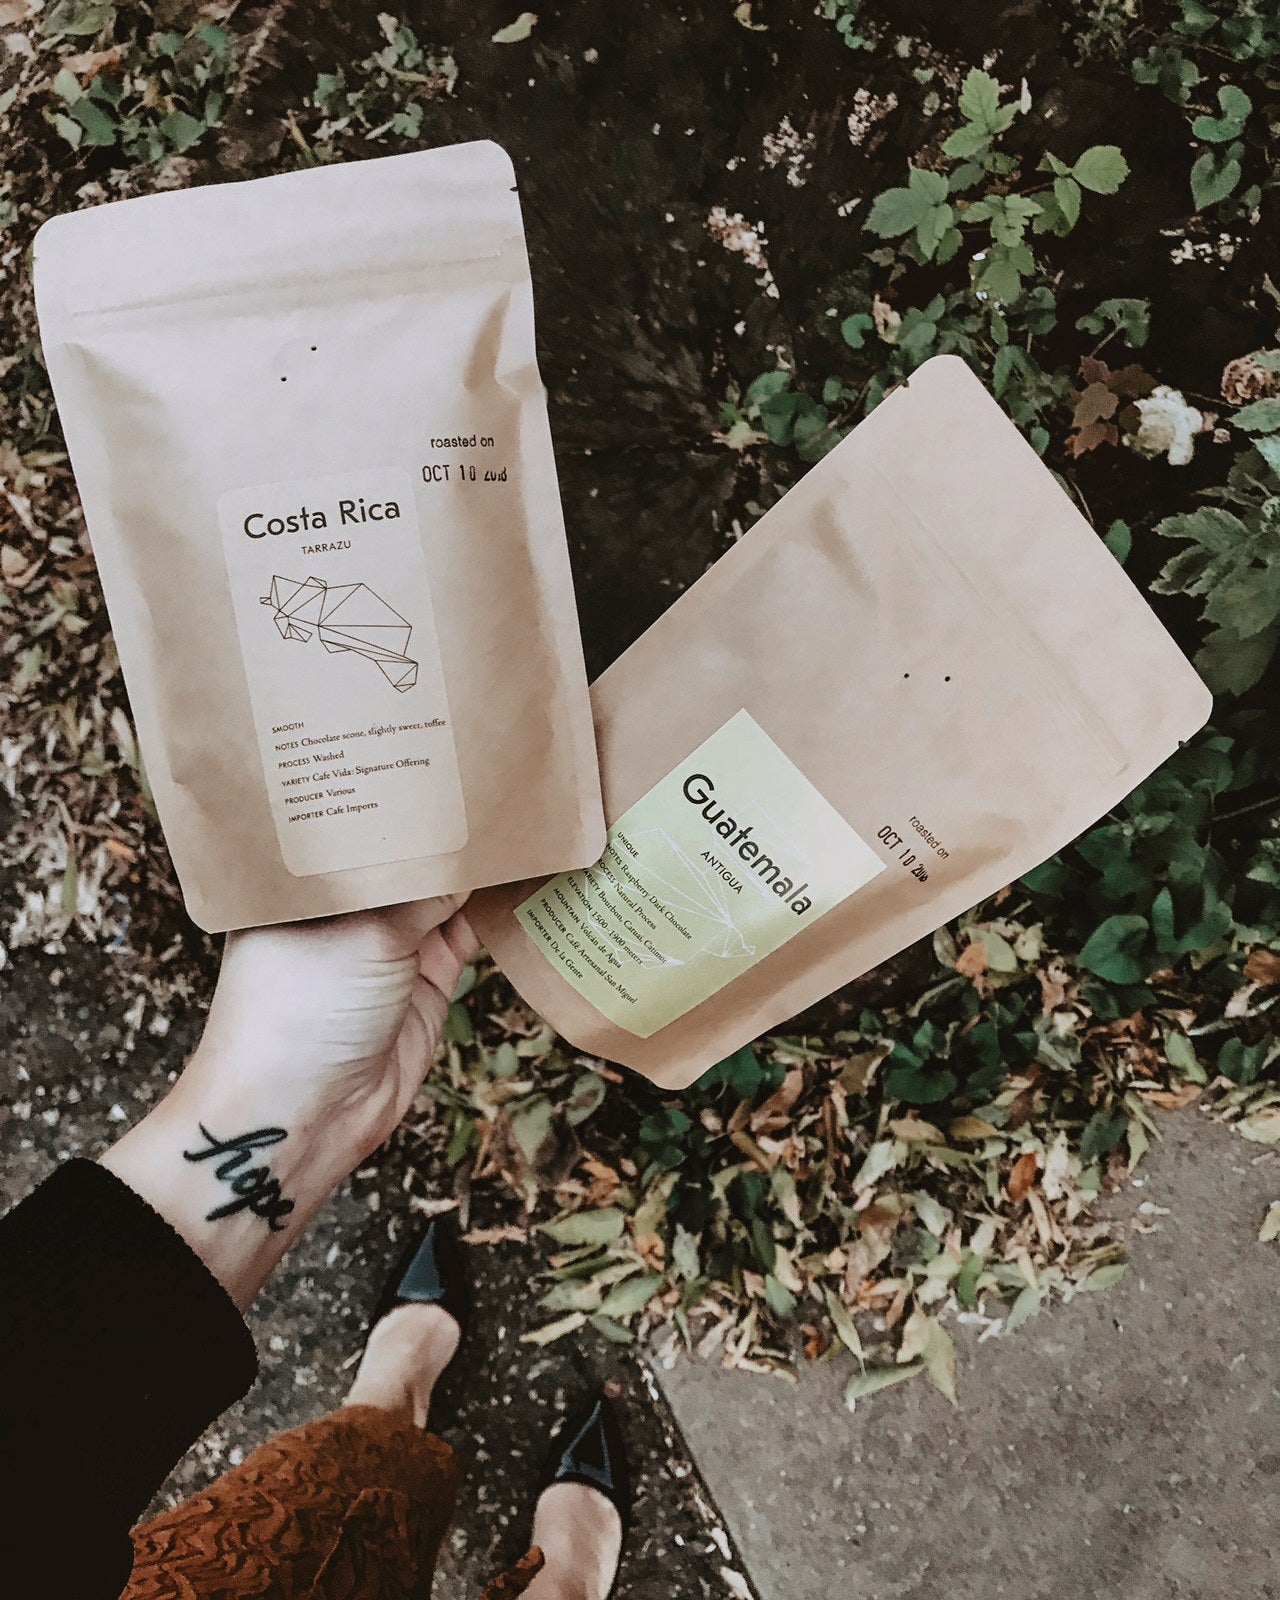 4oz Bag Subscription!